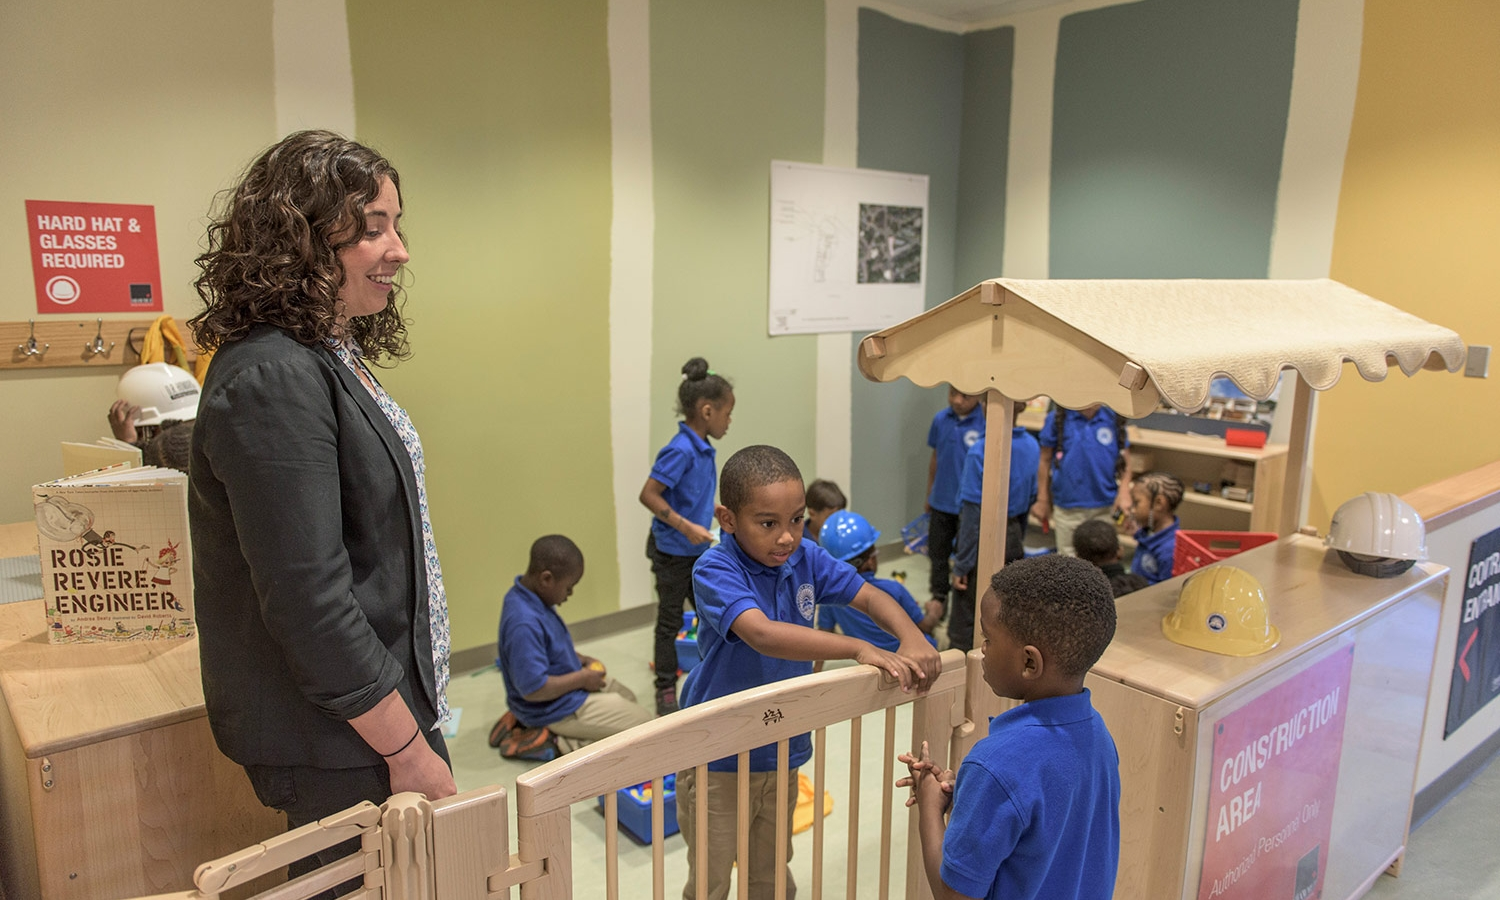 Construction themed play area